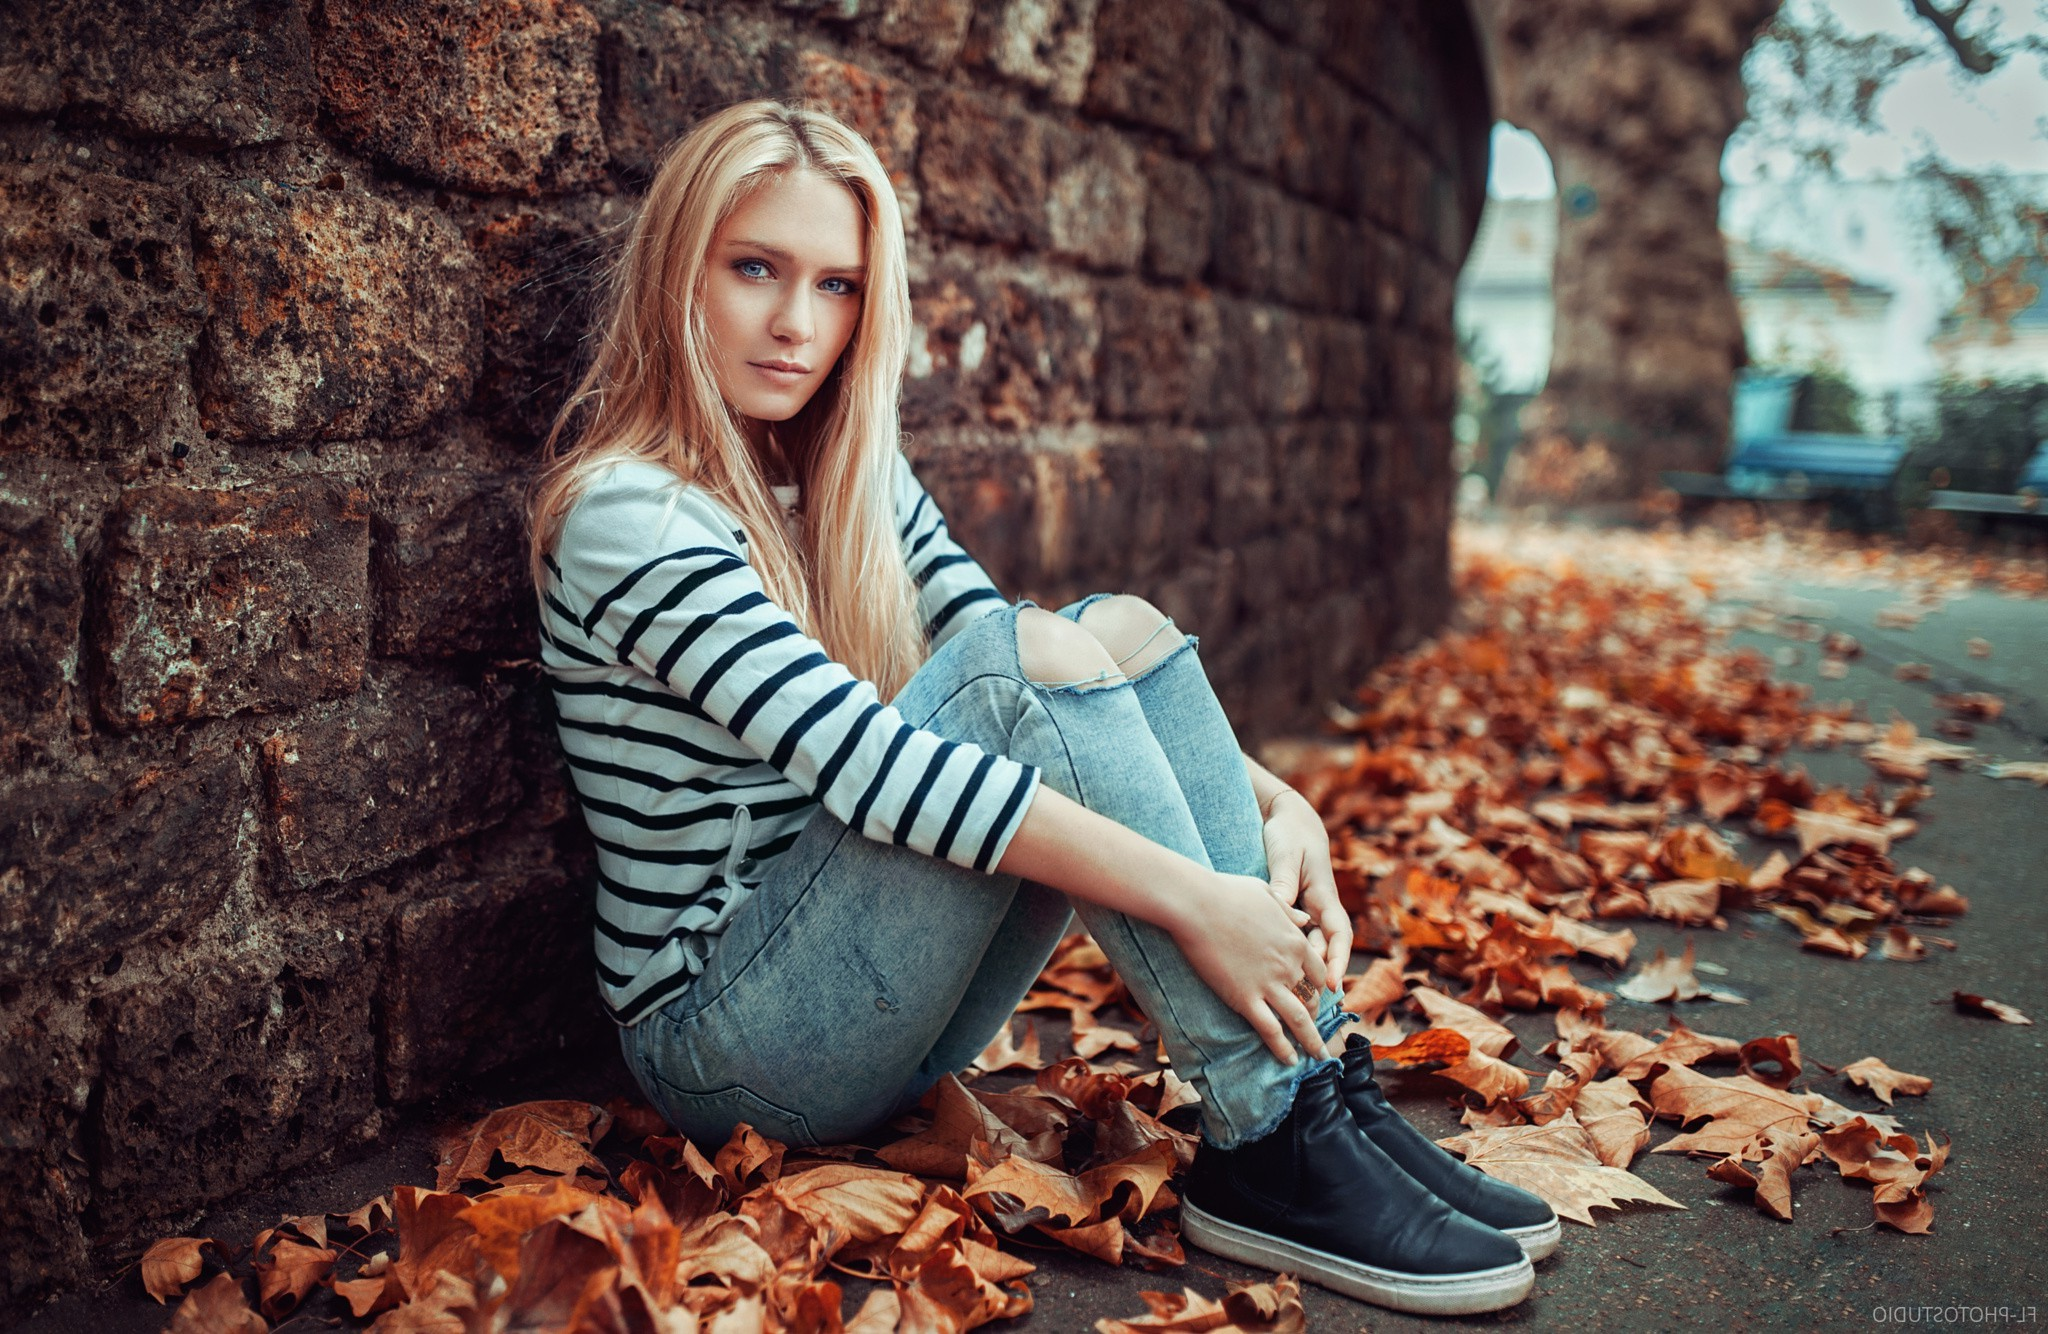 1920x1080 Fall Urban Wallpaper Women Blonde Sitting Looking At Viewer Pants Jeans